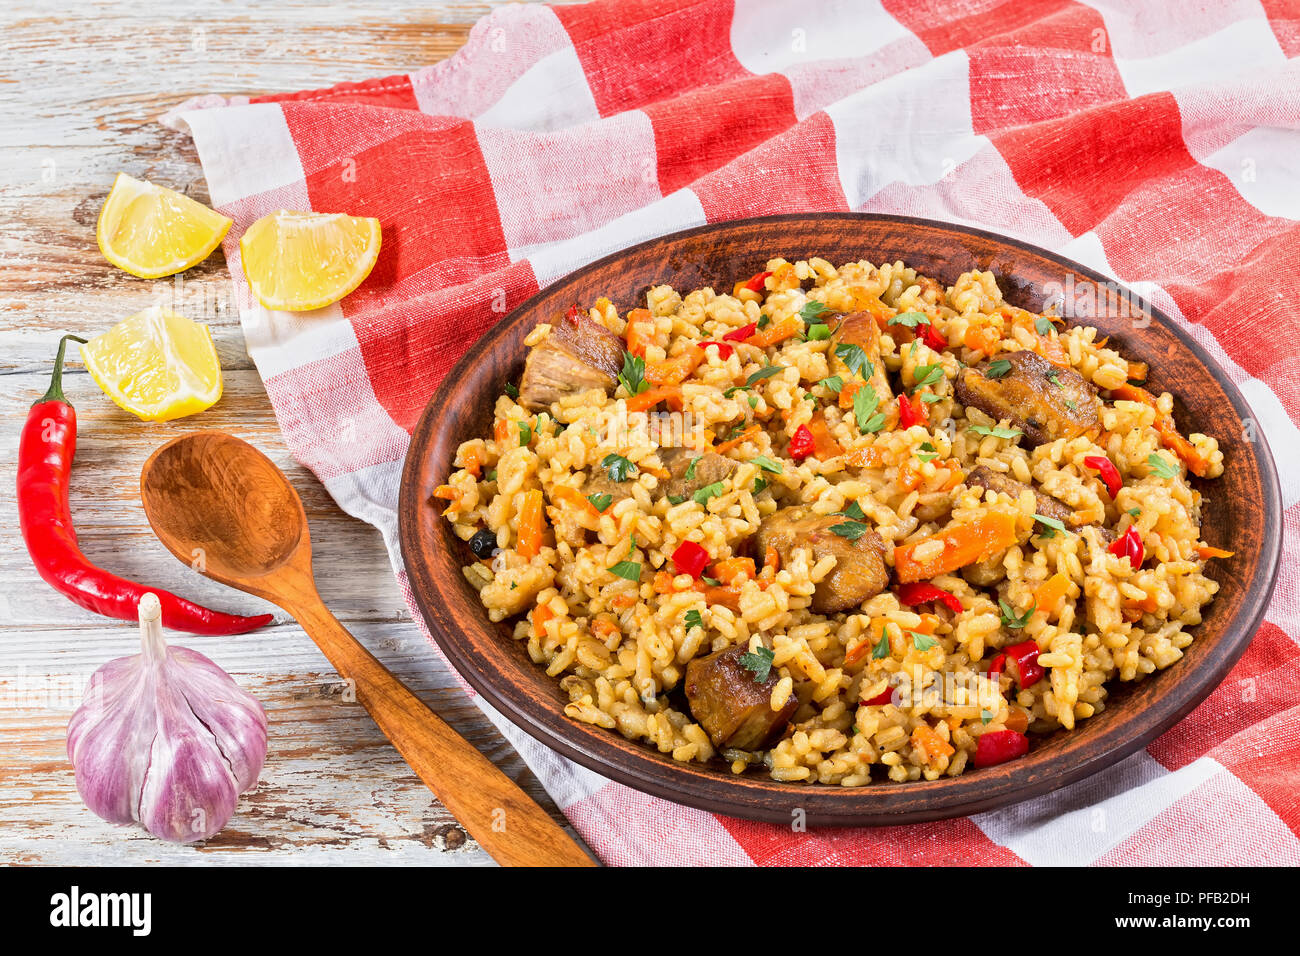 rice with meat, pepper, vegetables and spices on clay dish, kitchen towel,lemon slice, garlic, chili pepper and wooden spoon on white peeling paint pl Stock Photo